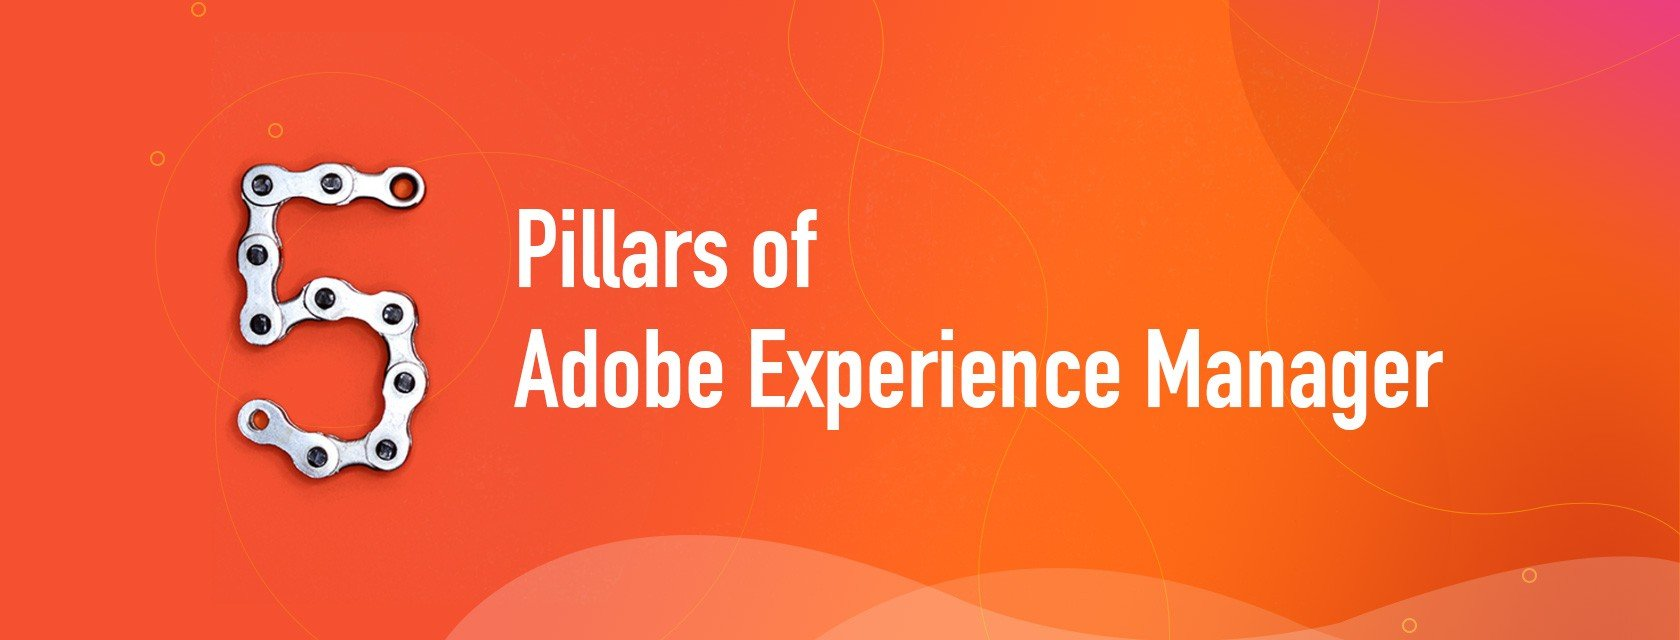 The 5 Pillars of Adobe Experience Manager: Sites, Assets, Mobile, Forms, and Communities